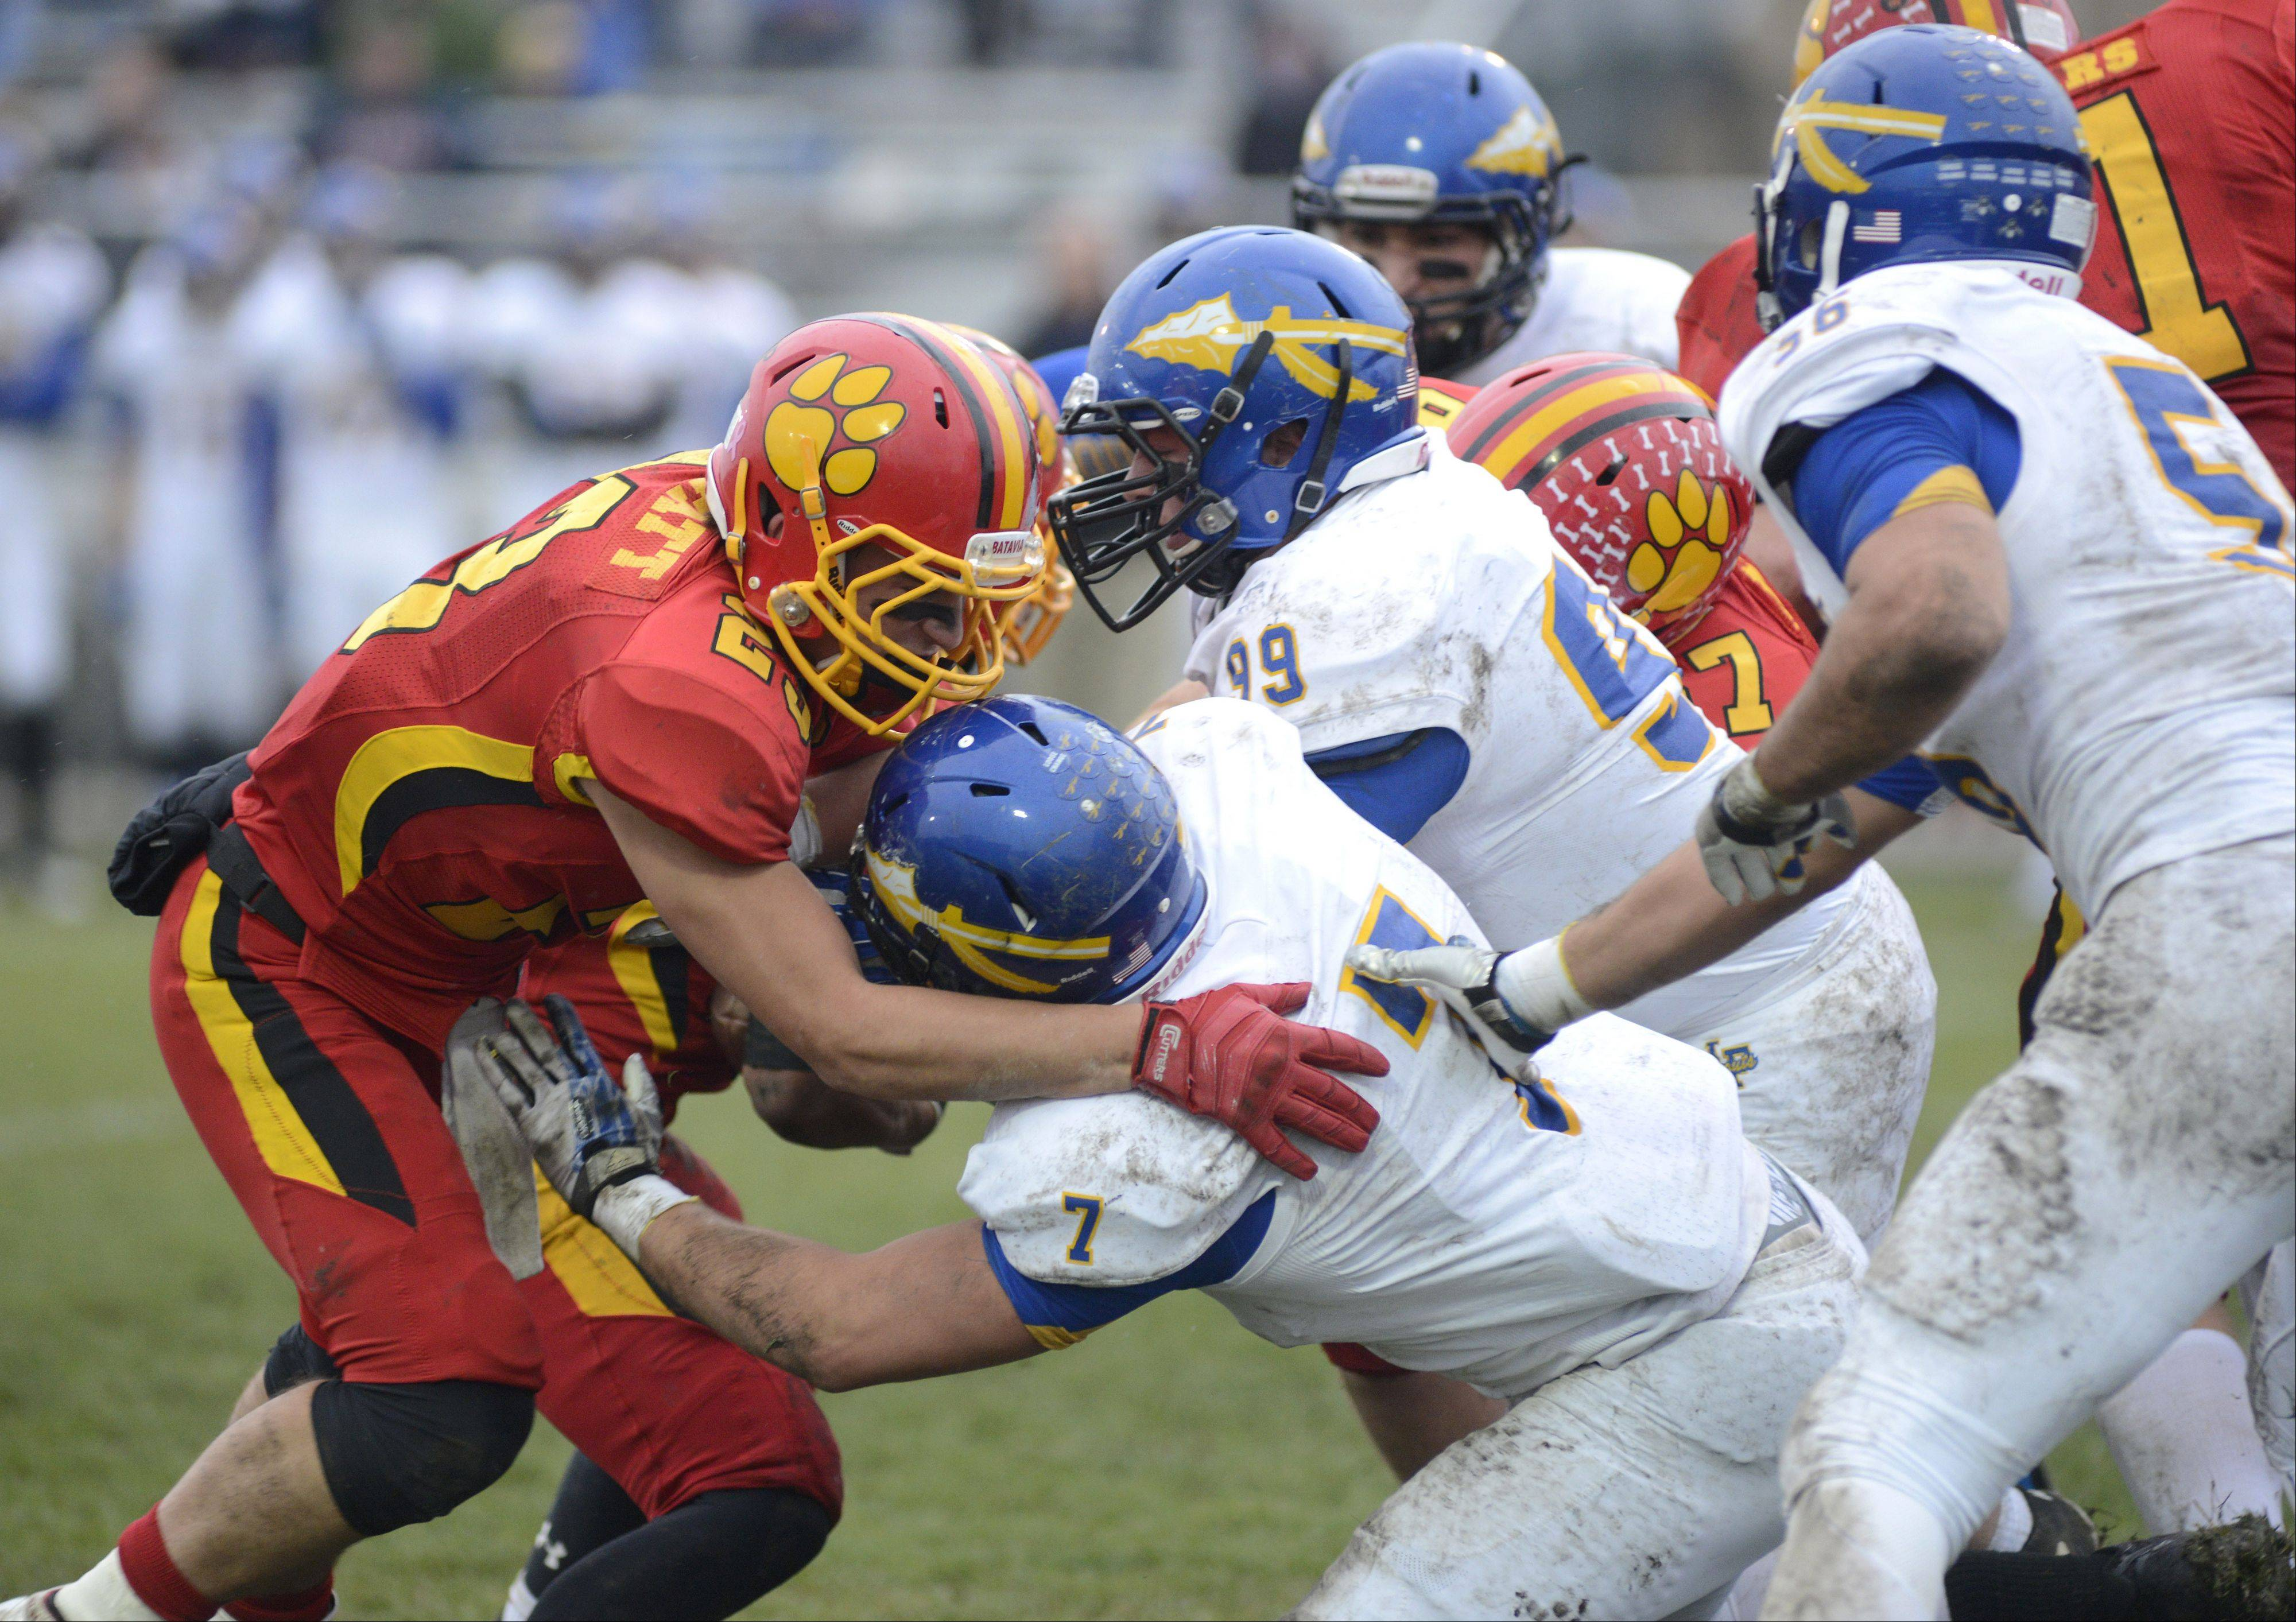 Batavia's Michael Moffatt tucks the ball as he's tackled by Lake Forest's Trent Williams (7) and Nicholas Athenson in the second quarter of the Class 6A quarterfinal on Saturday, November 16.